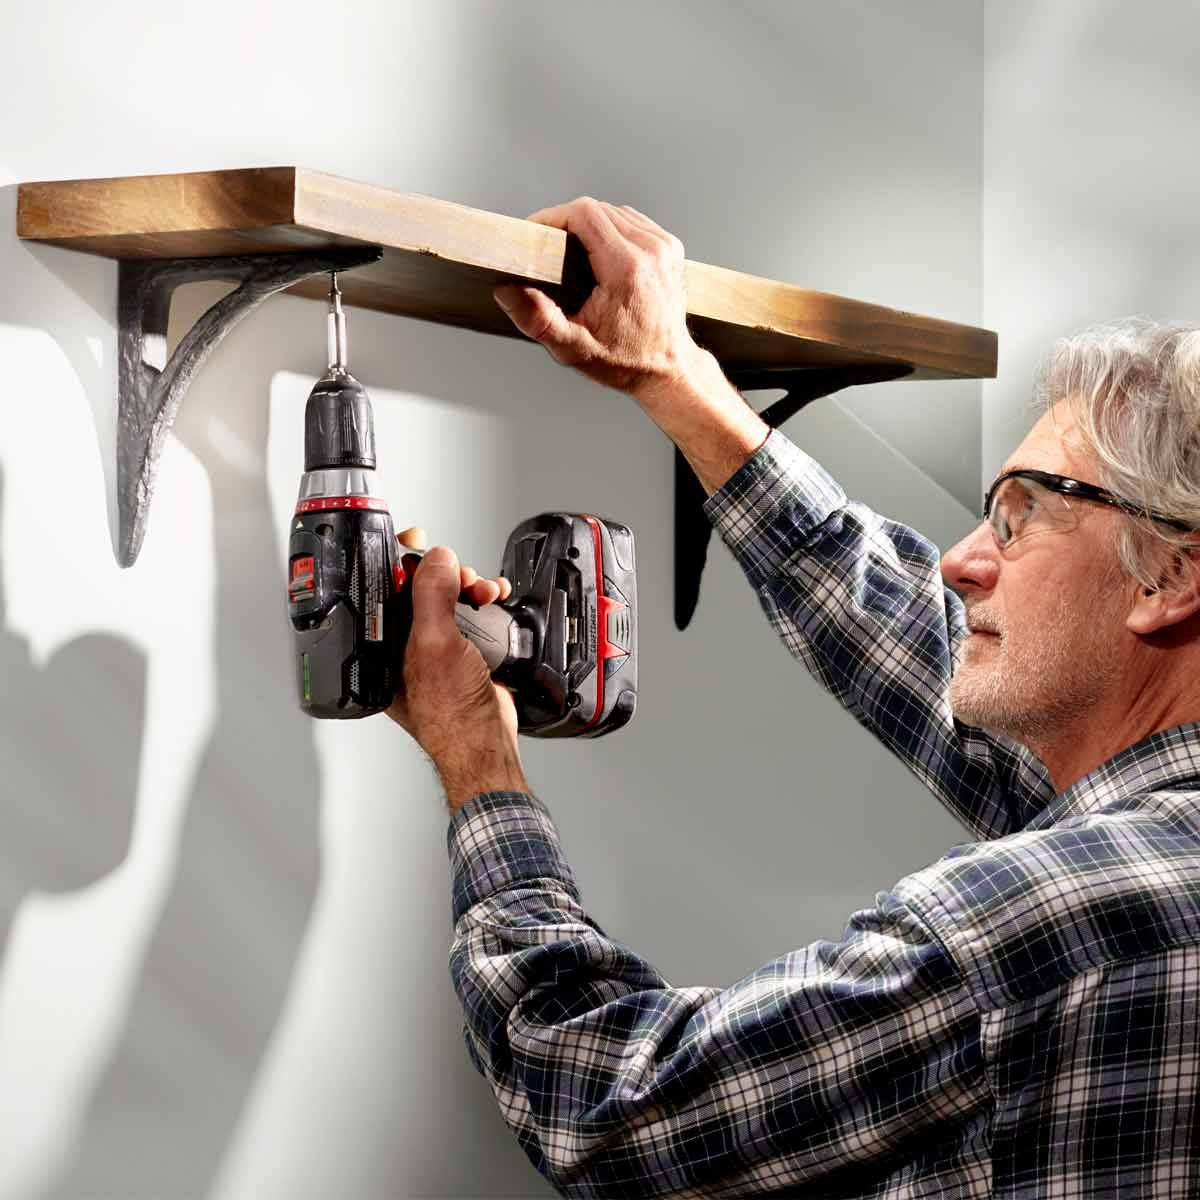 How to hang shelves on concrete walls without drilling